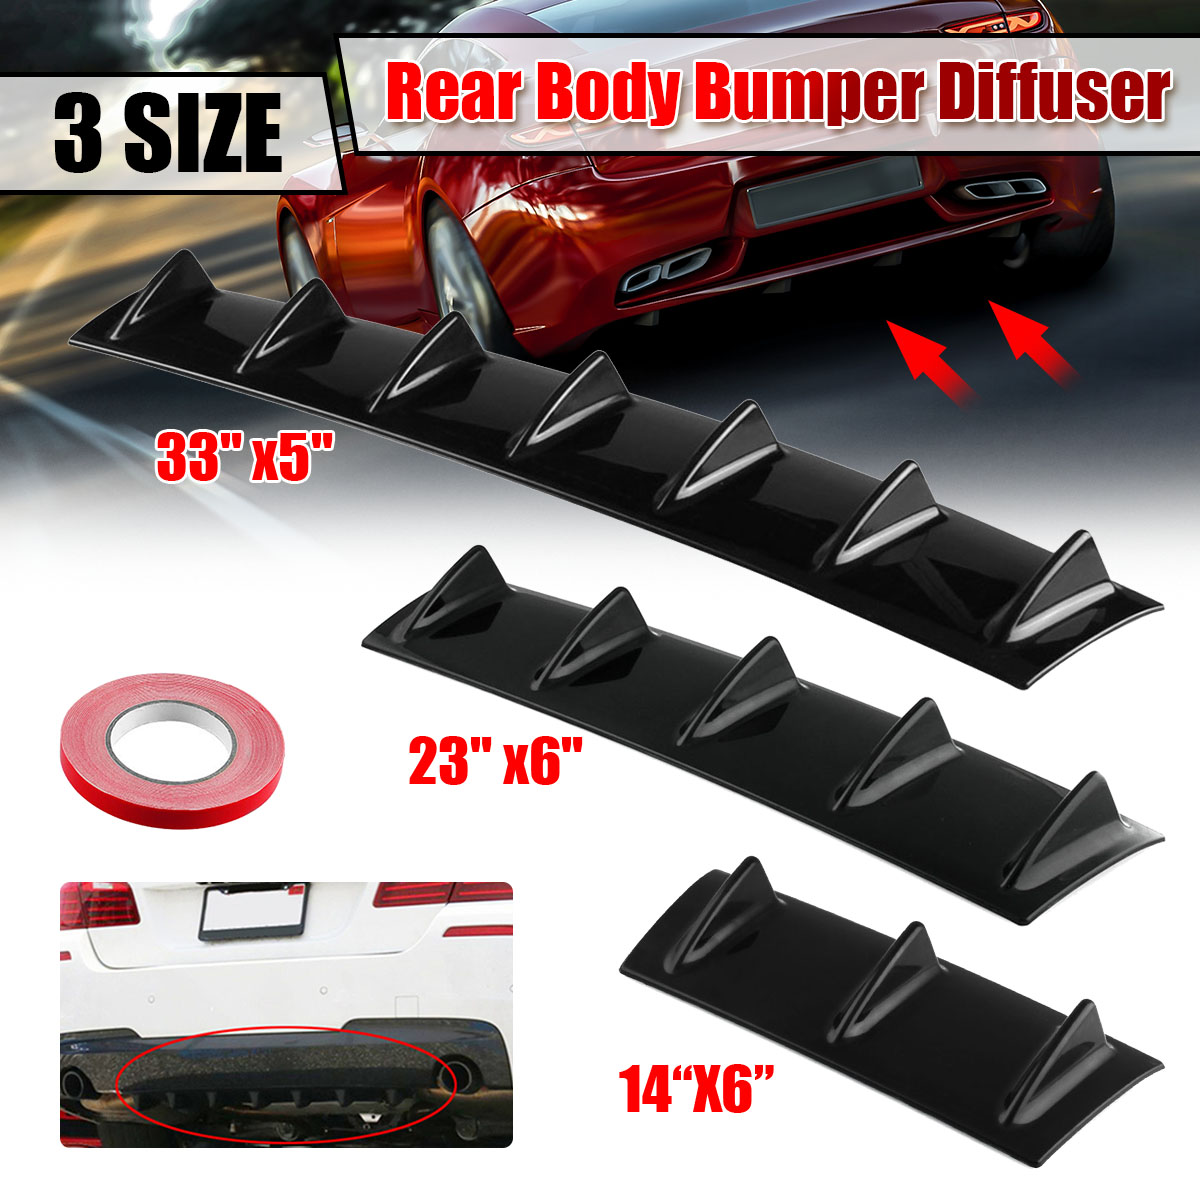 Gloss Black Universal Car Rear Bumper Diffuser Splitter Shark 3 5 7Fin Kit Rear Bumper Lip Spoiler Voor Honda Voor toyota Voor Benz